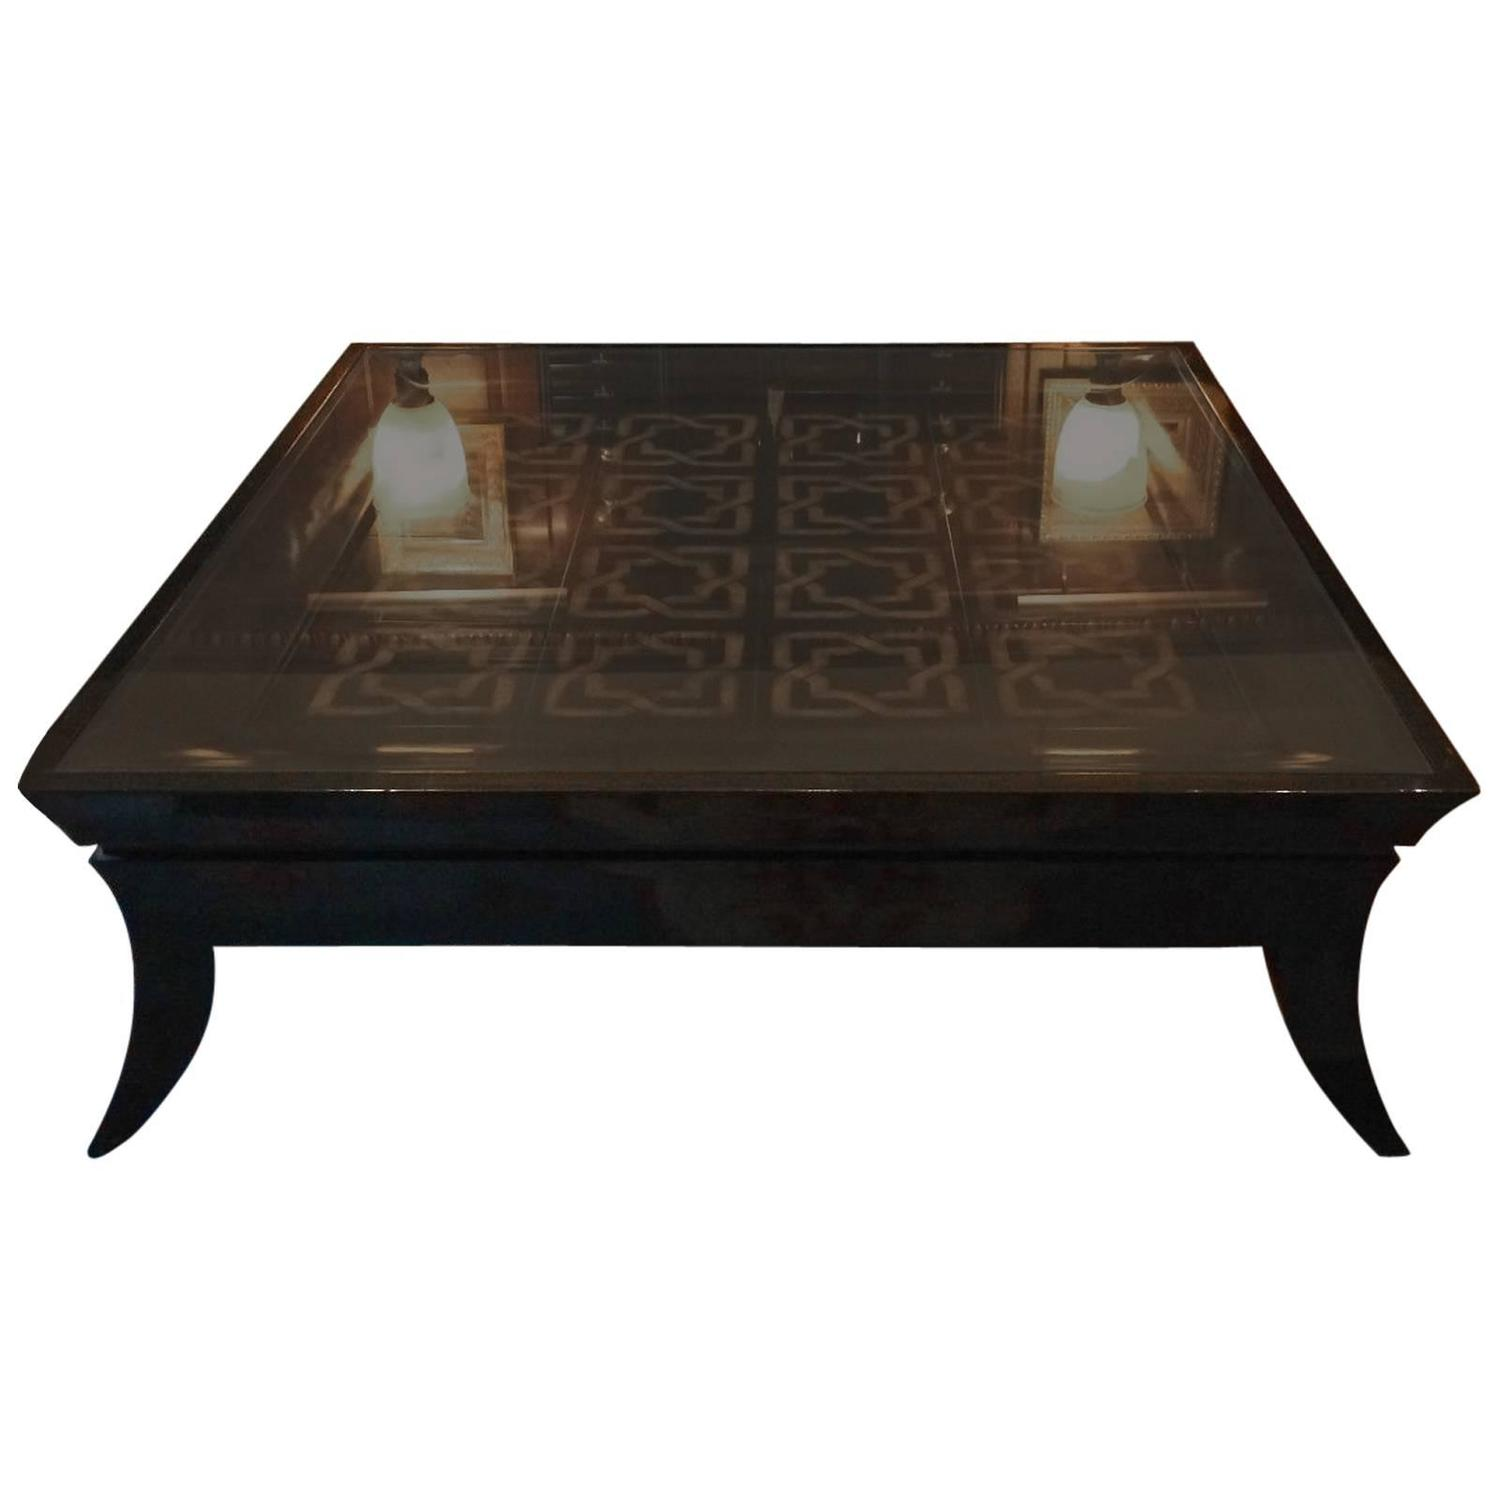 Large coffee table glass topped tiled modern at 1stdibs Wide coffee table